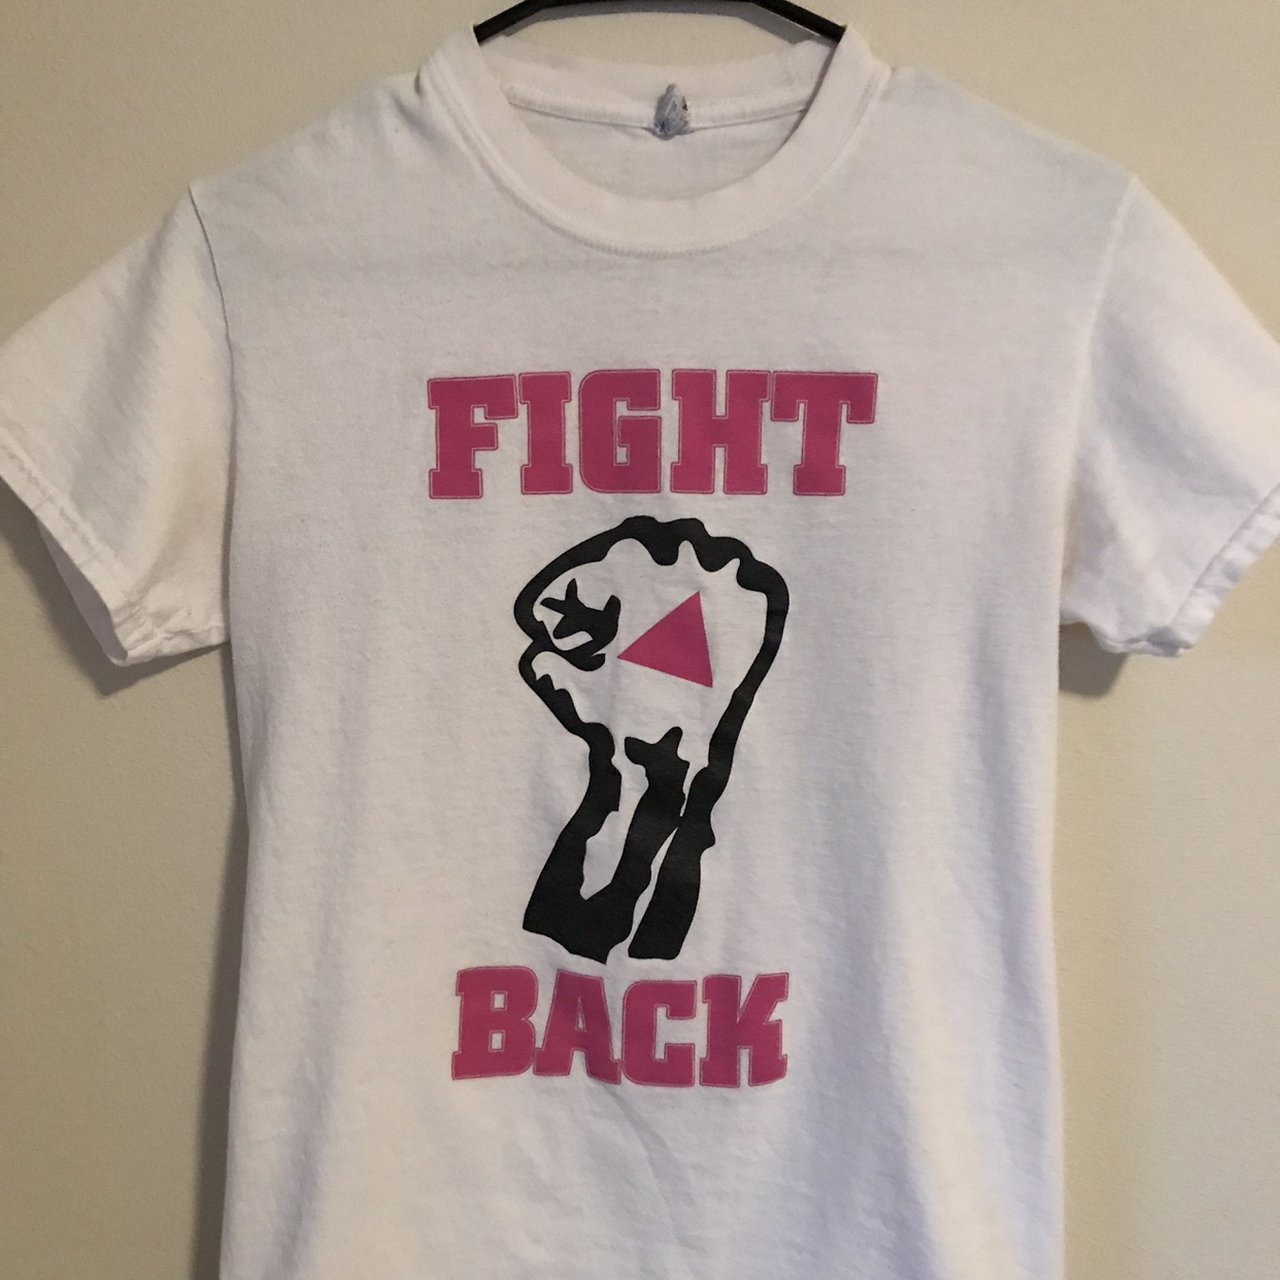 adfc3c7ad Gloss Fight Back t-shirt Size S Tags: